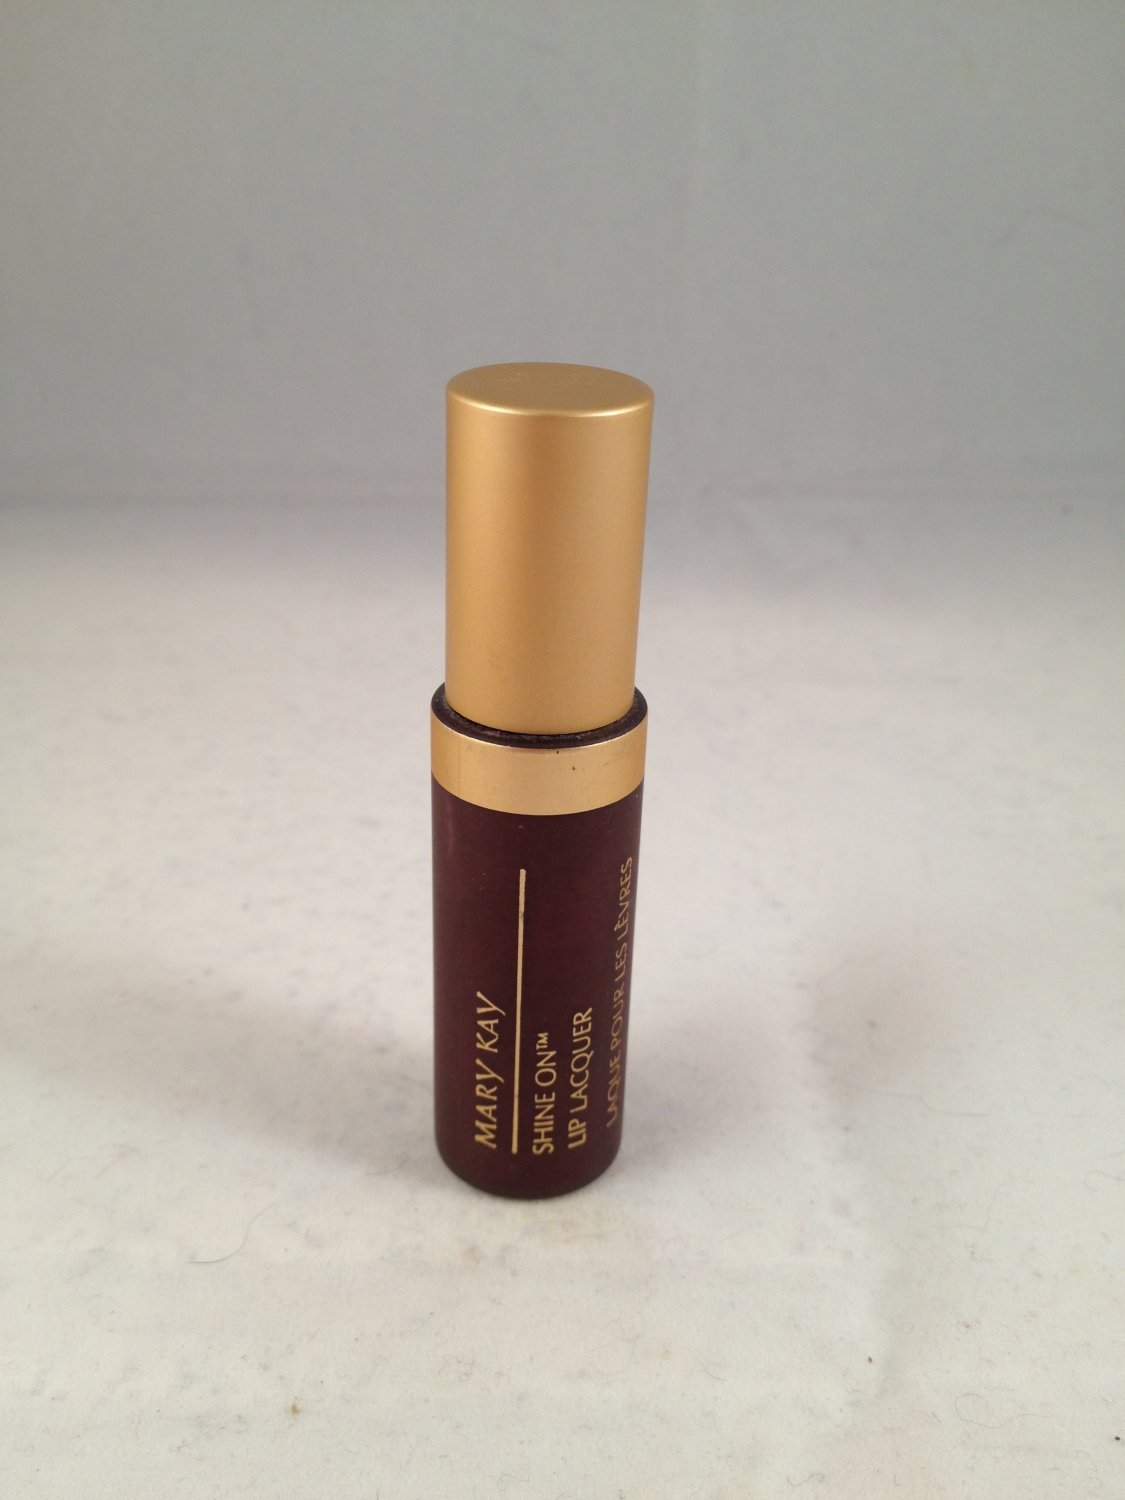 Mary Kay Shine On Lip Lacquer Plum Shimmer Color Gloss liquid lipstick